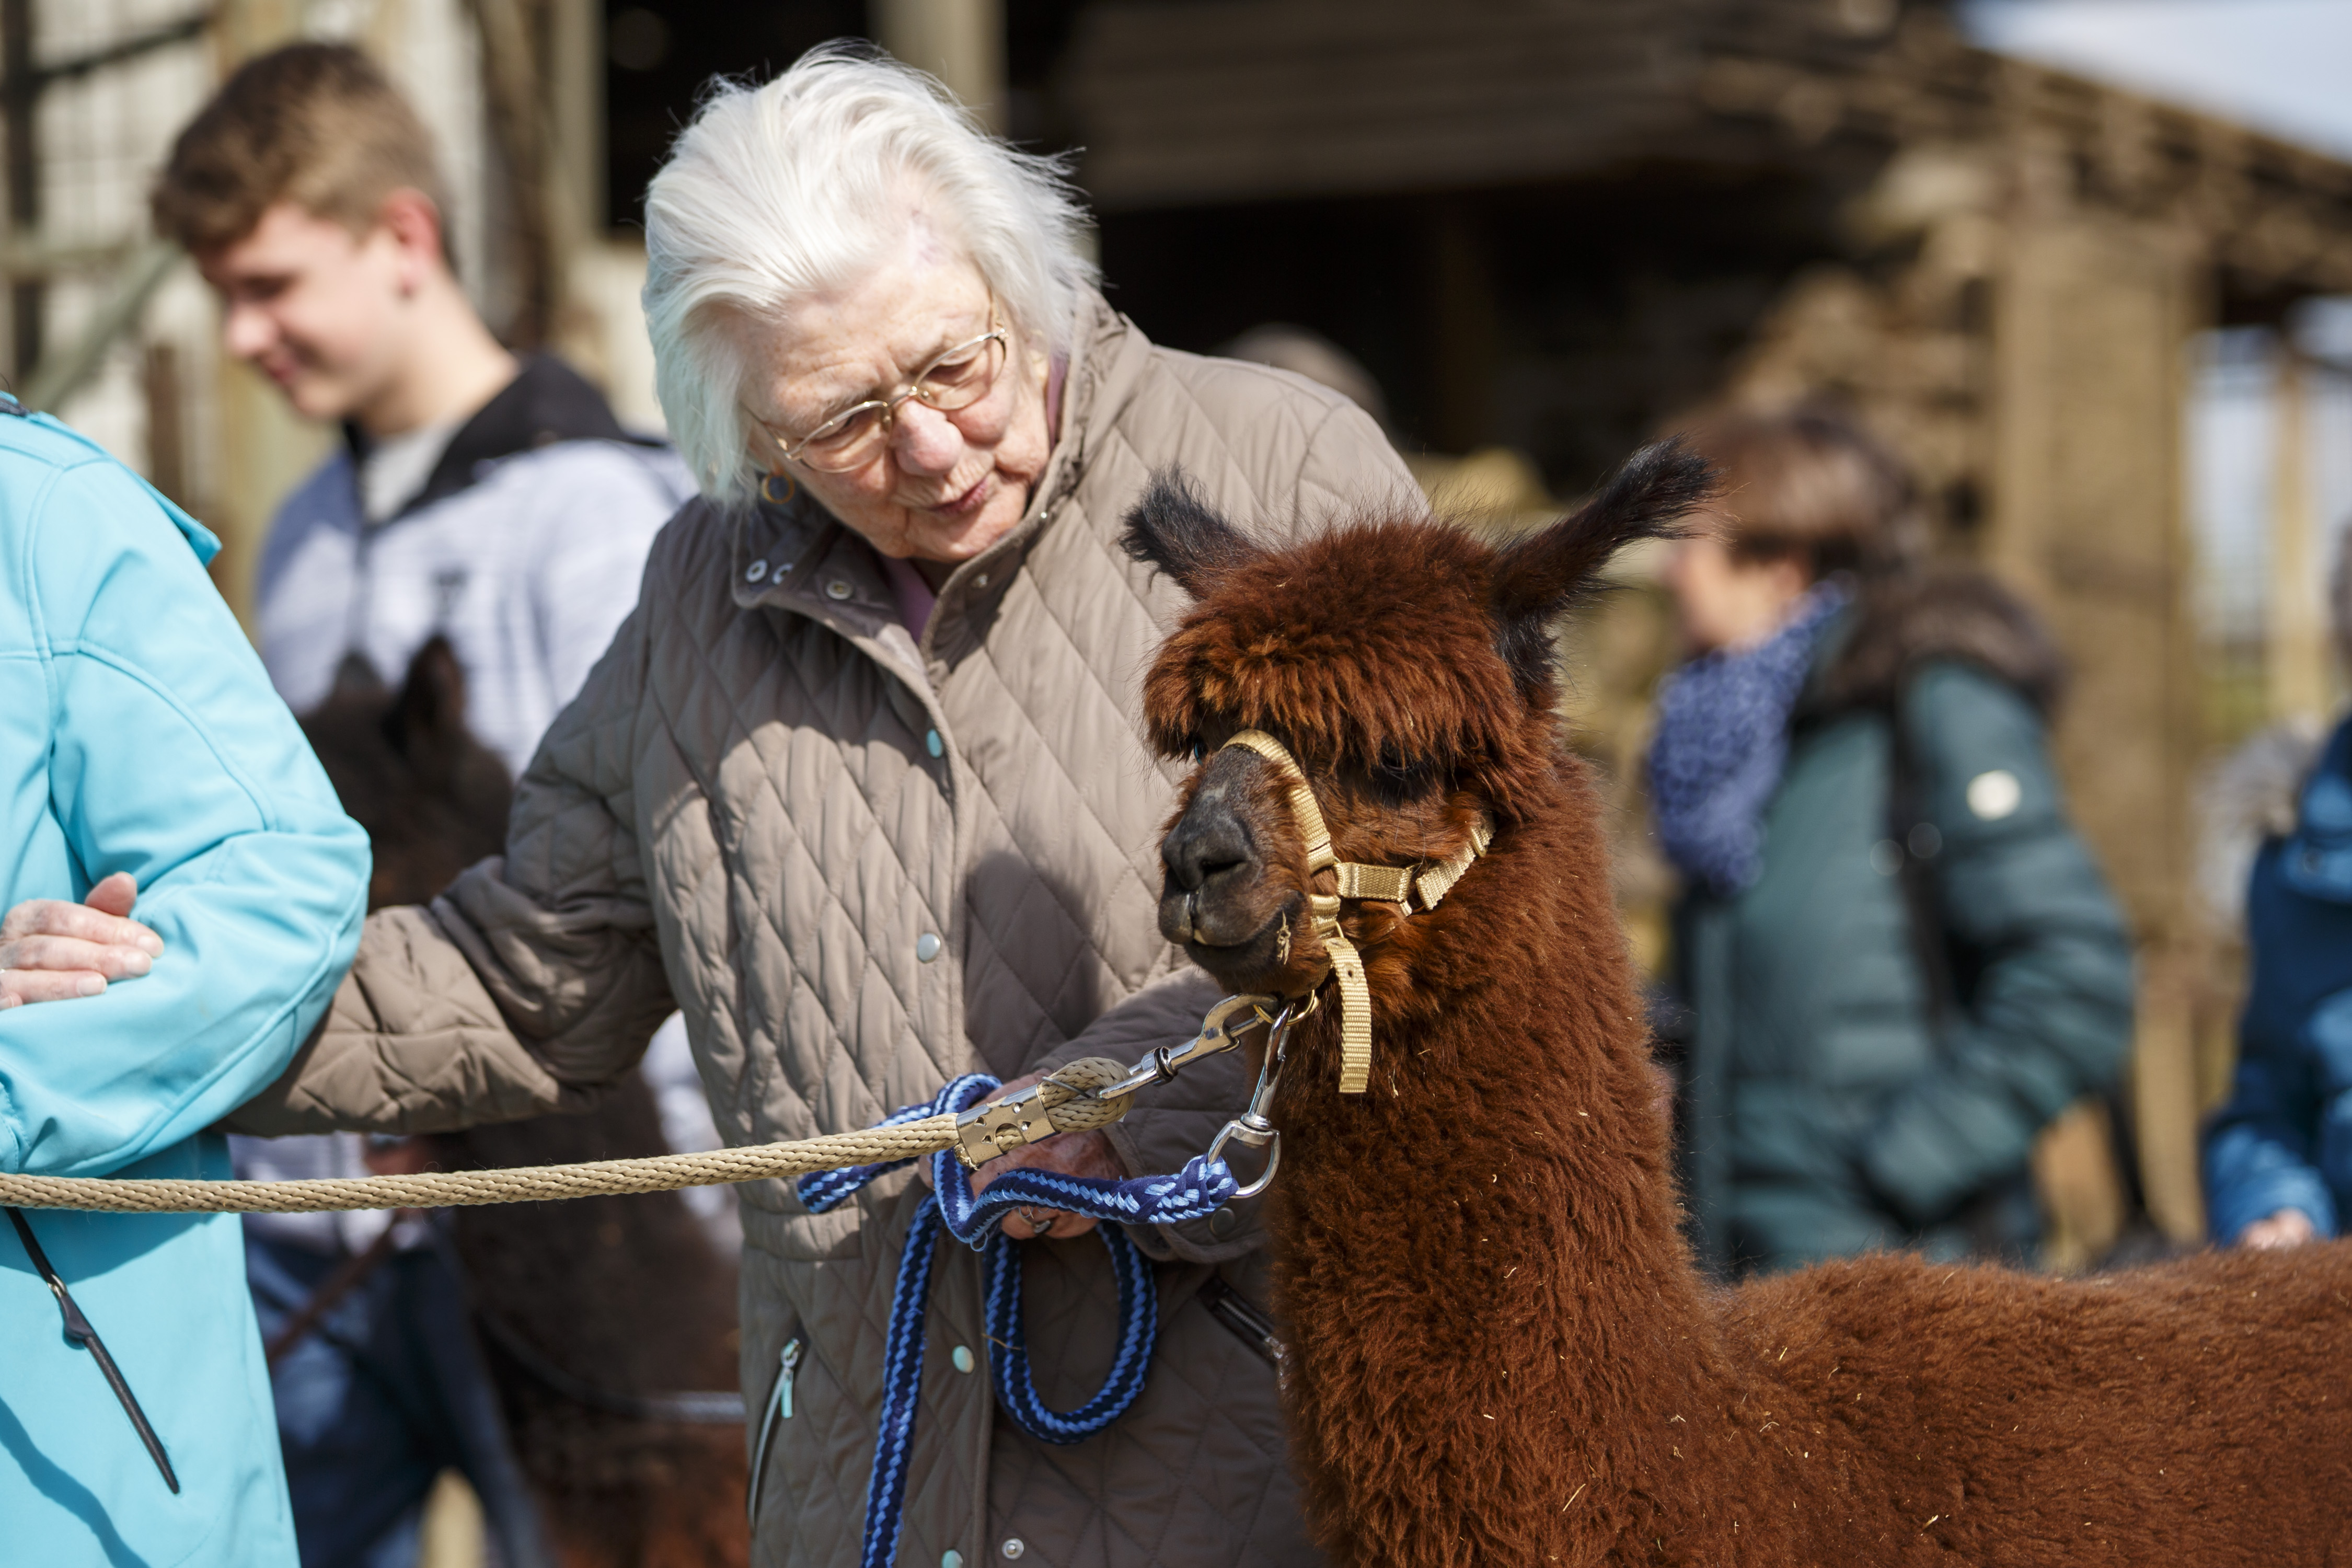 A dementia patient spends the day at an alpaca farm as therapy.